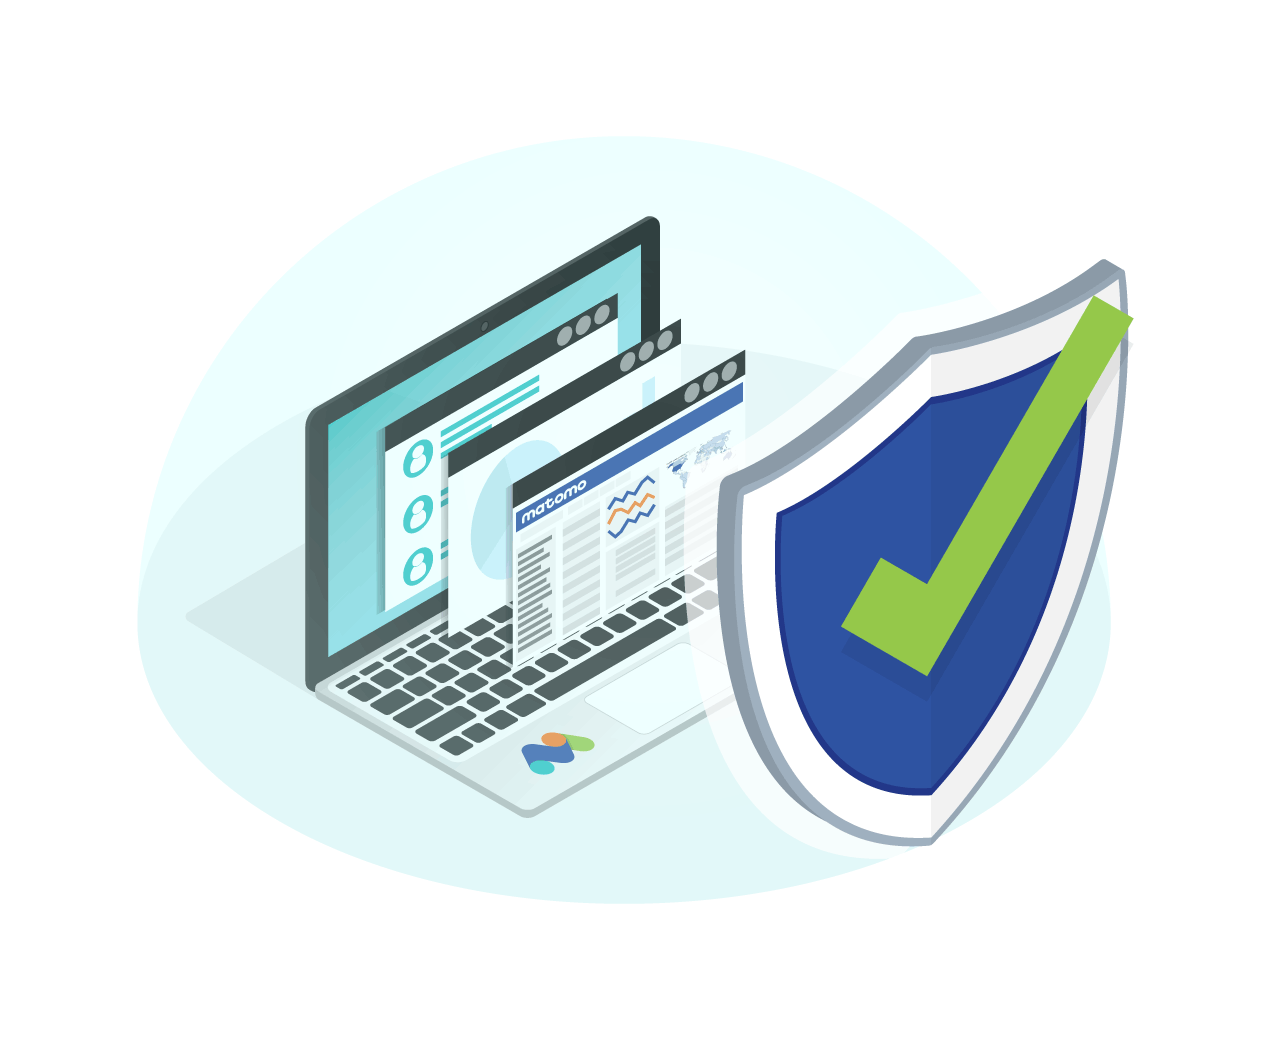 Analytics for security businesses